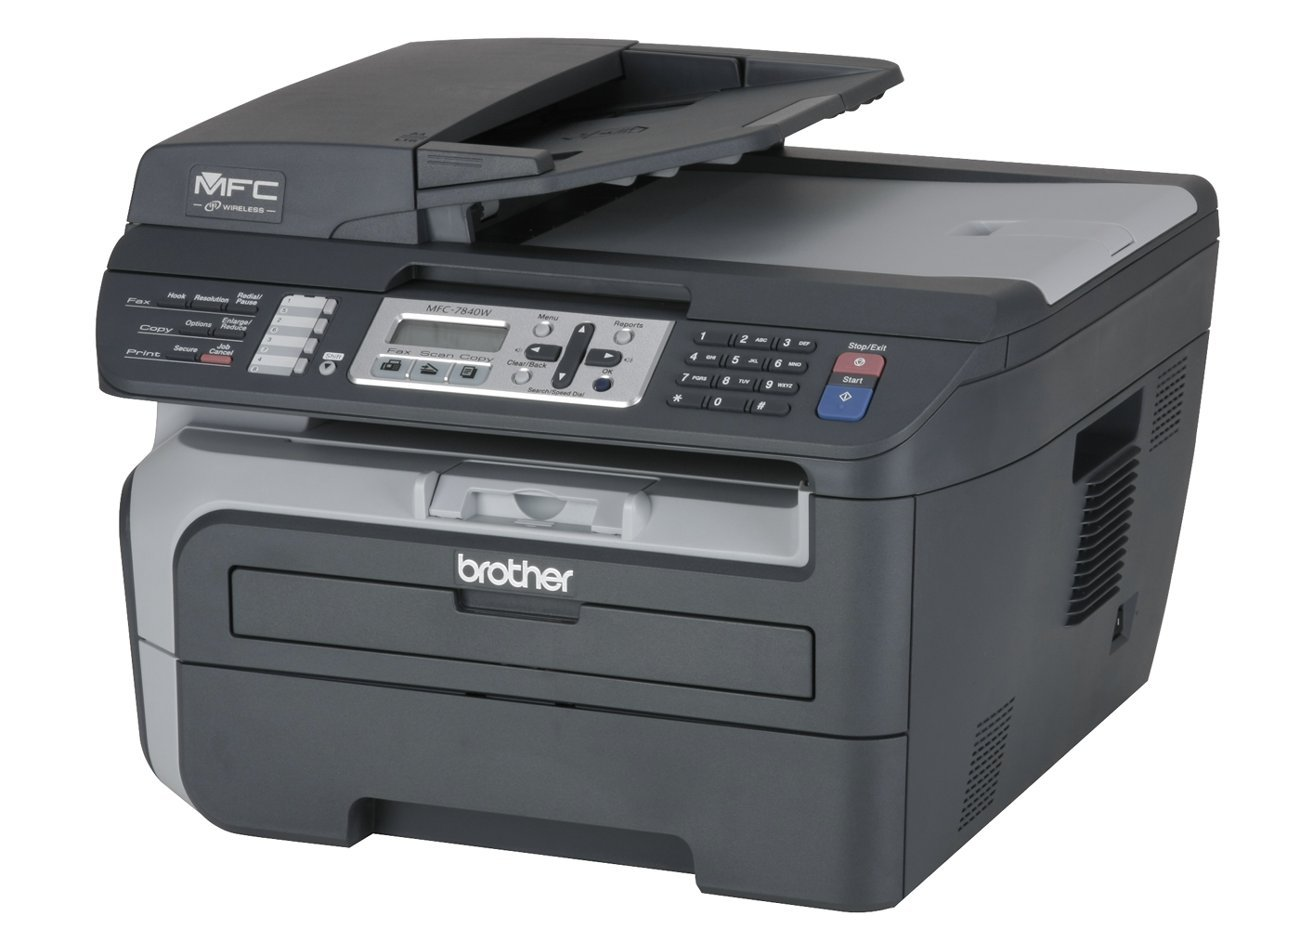 amazon com brother mfc 7840w laser multifunction center electronics rh amazon com Brother MFC 7840W Maintenance Brother Printer MFC-7840W Wireless Setup